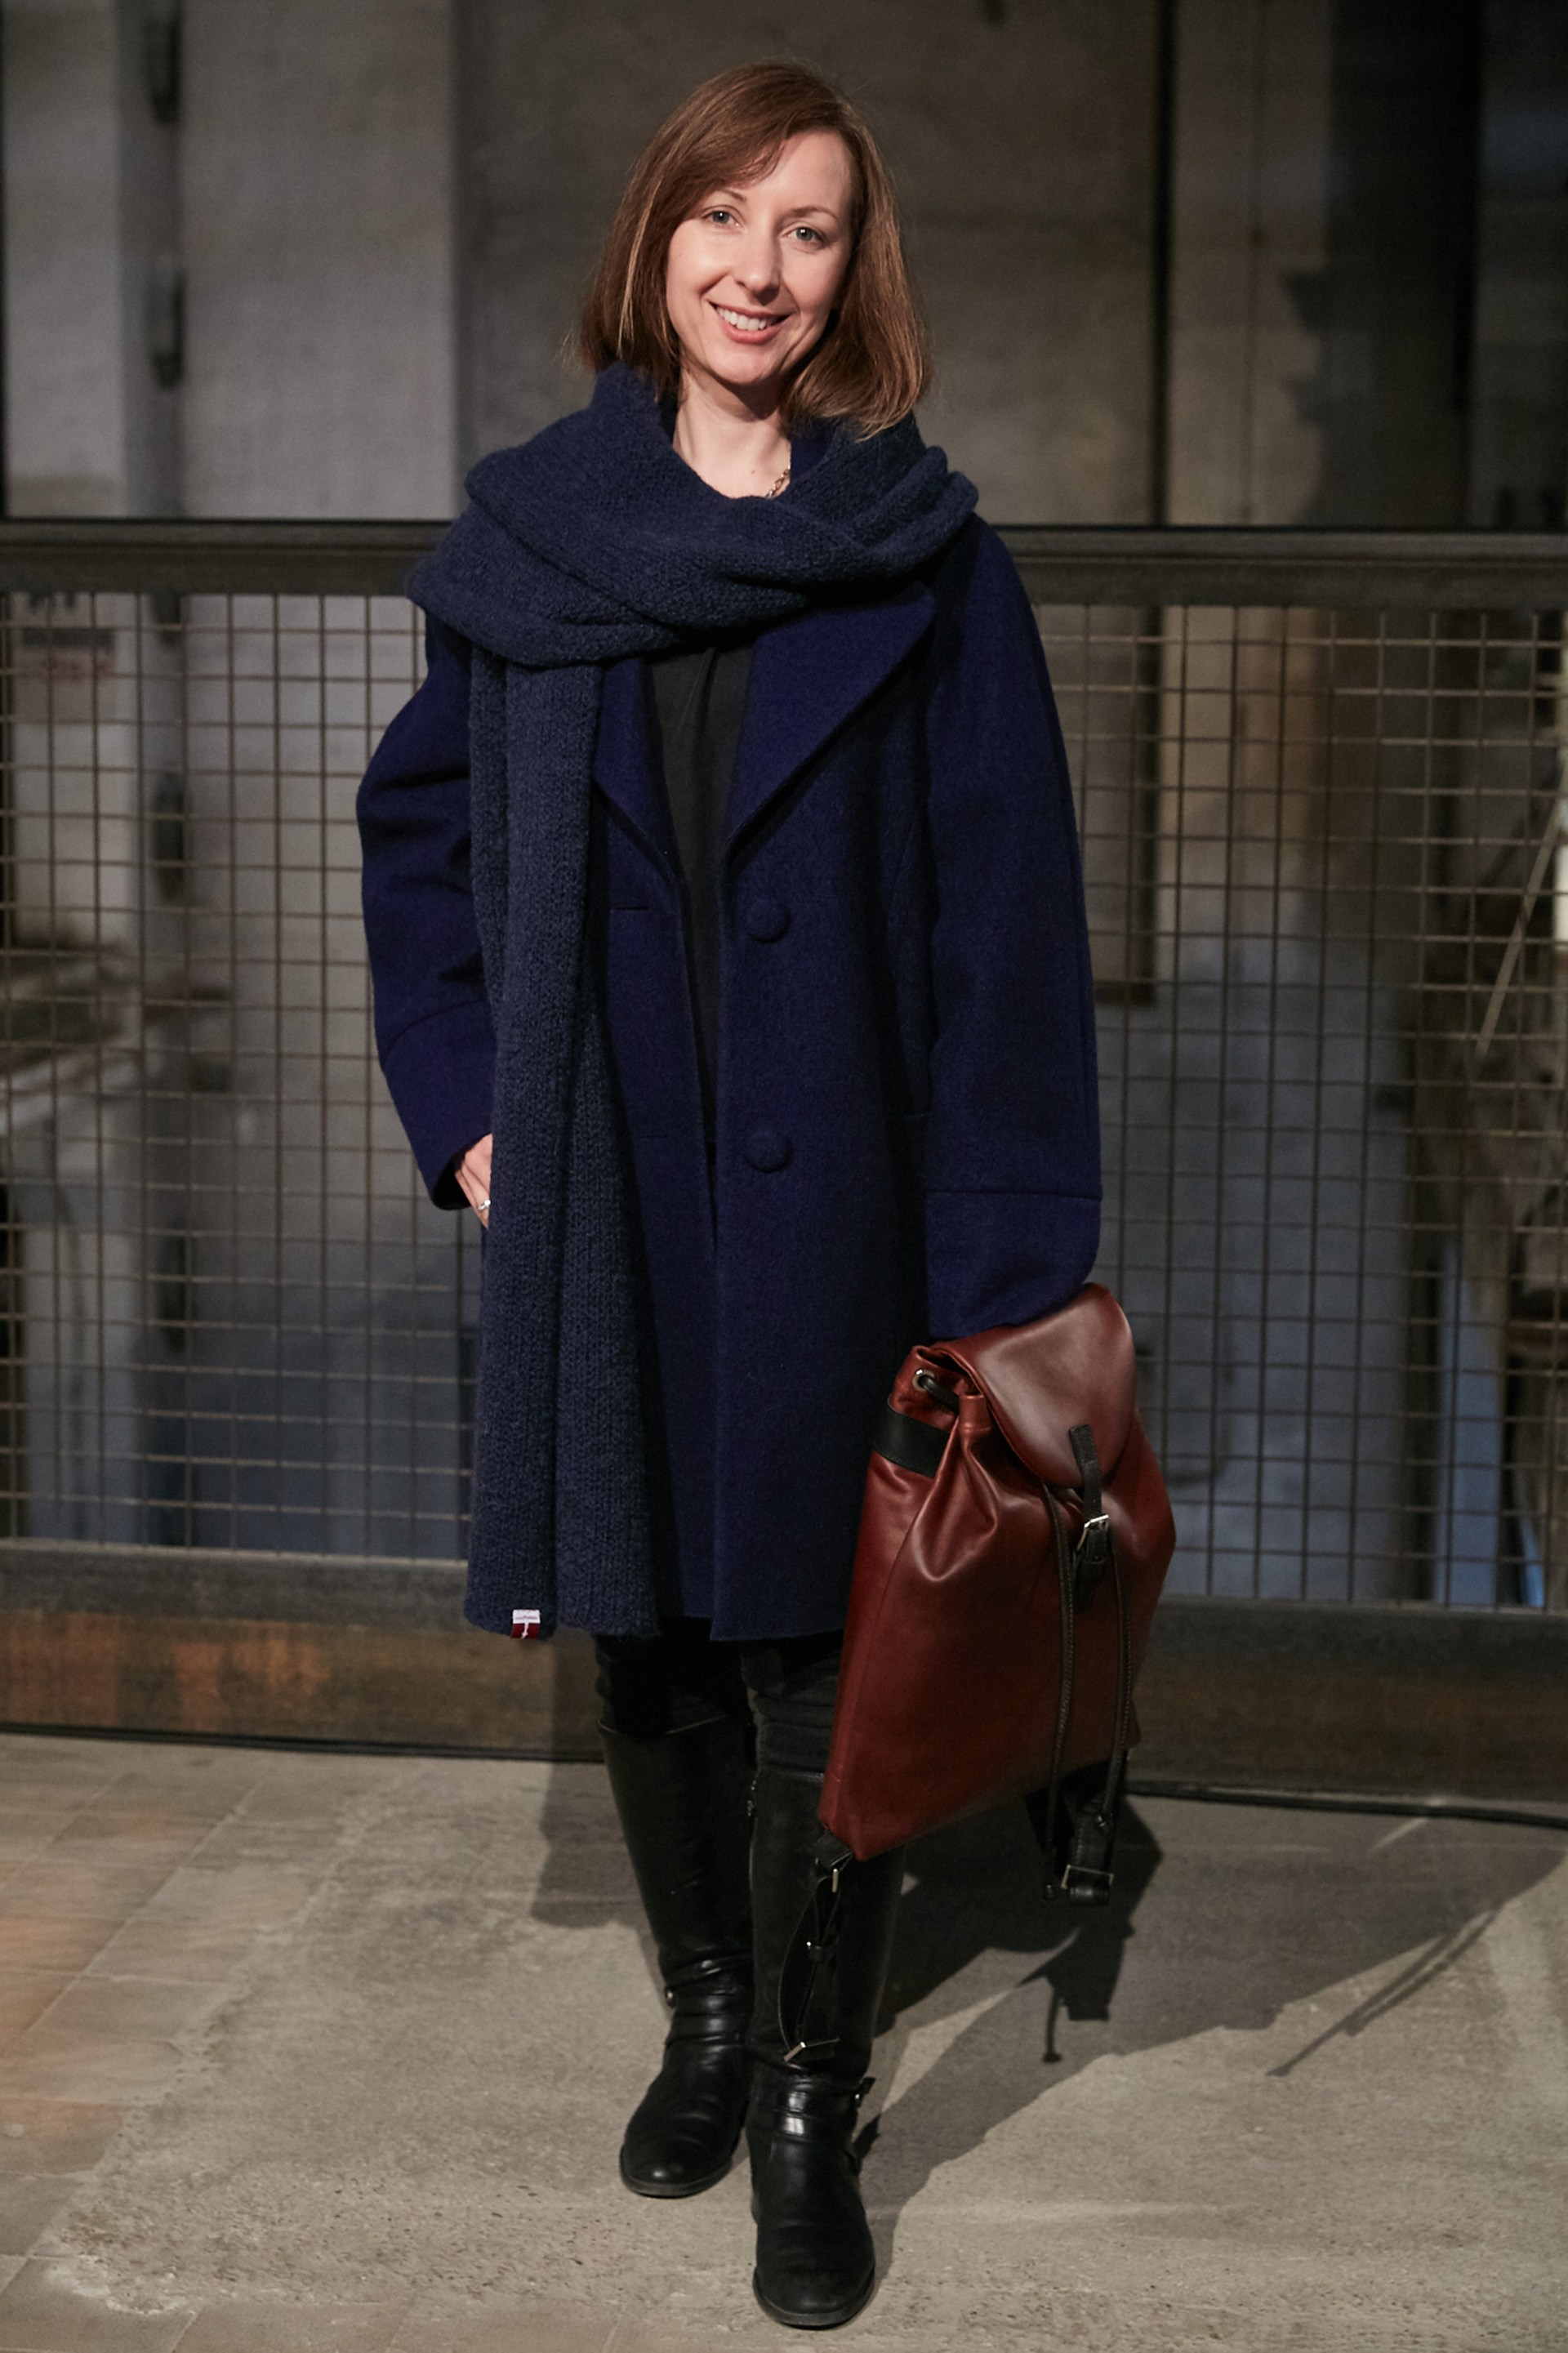 greenlooksgreat-winter-trends-ethicalfashion-blue-coat